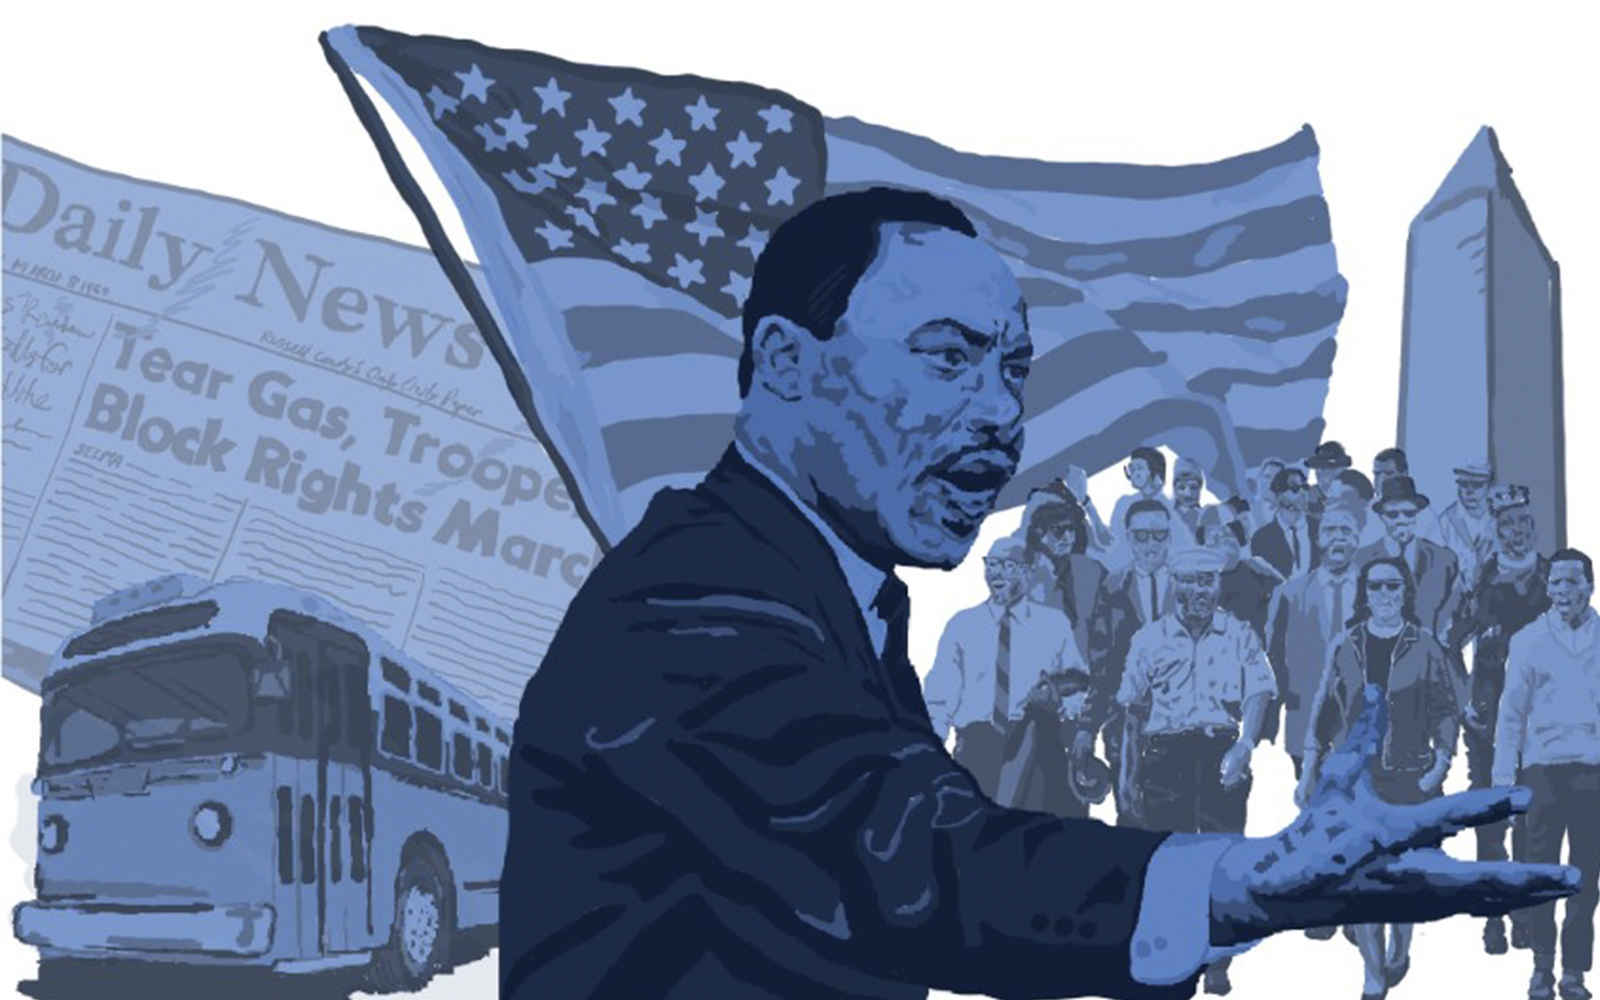 Celebration of the Life and Legacy of Dr. Martin Luther King Jr. image